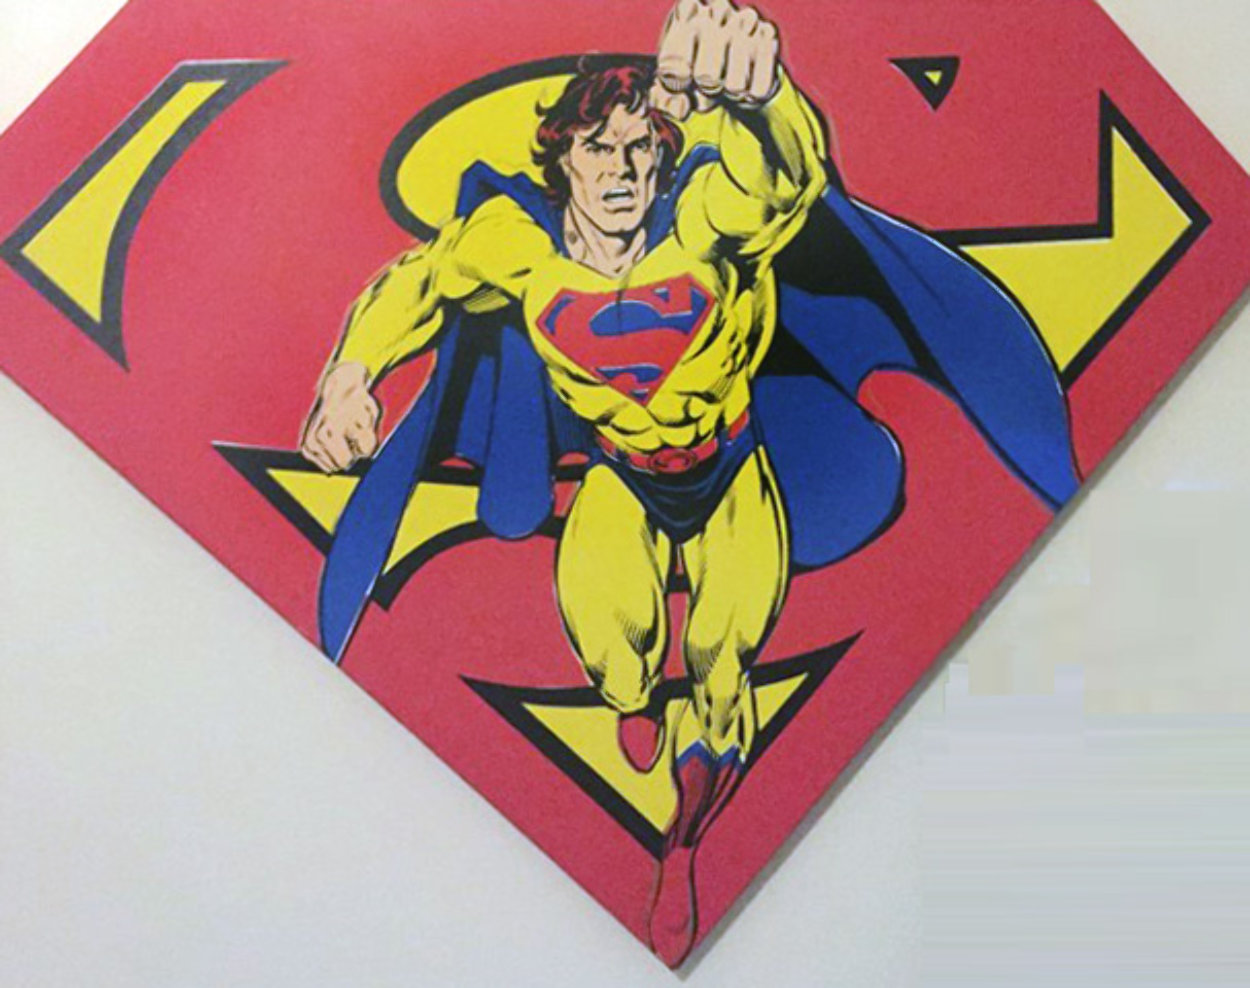 Superman Shield Reverse Colors Canvas Painting  1995 36x50 Limited Edition Print by Steve Kaufman